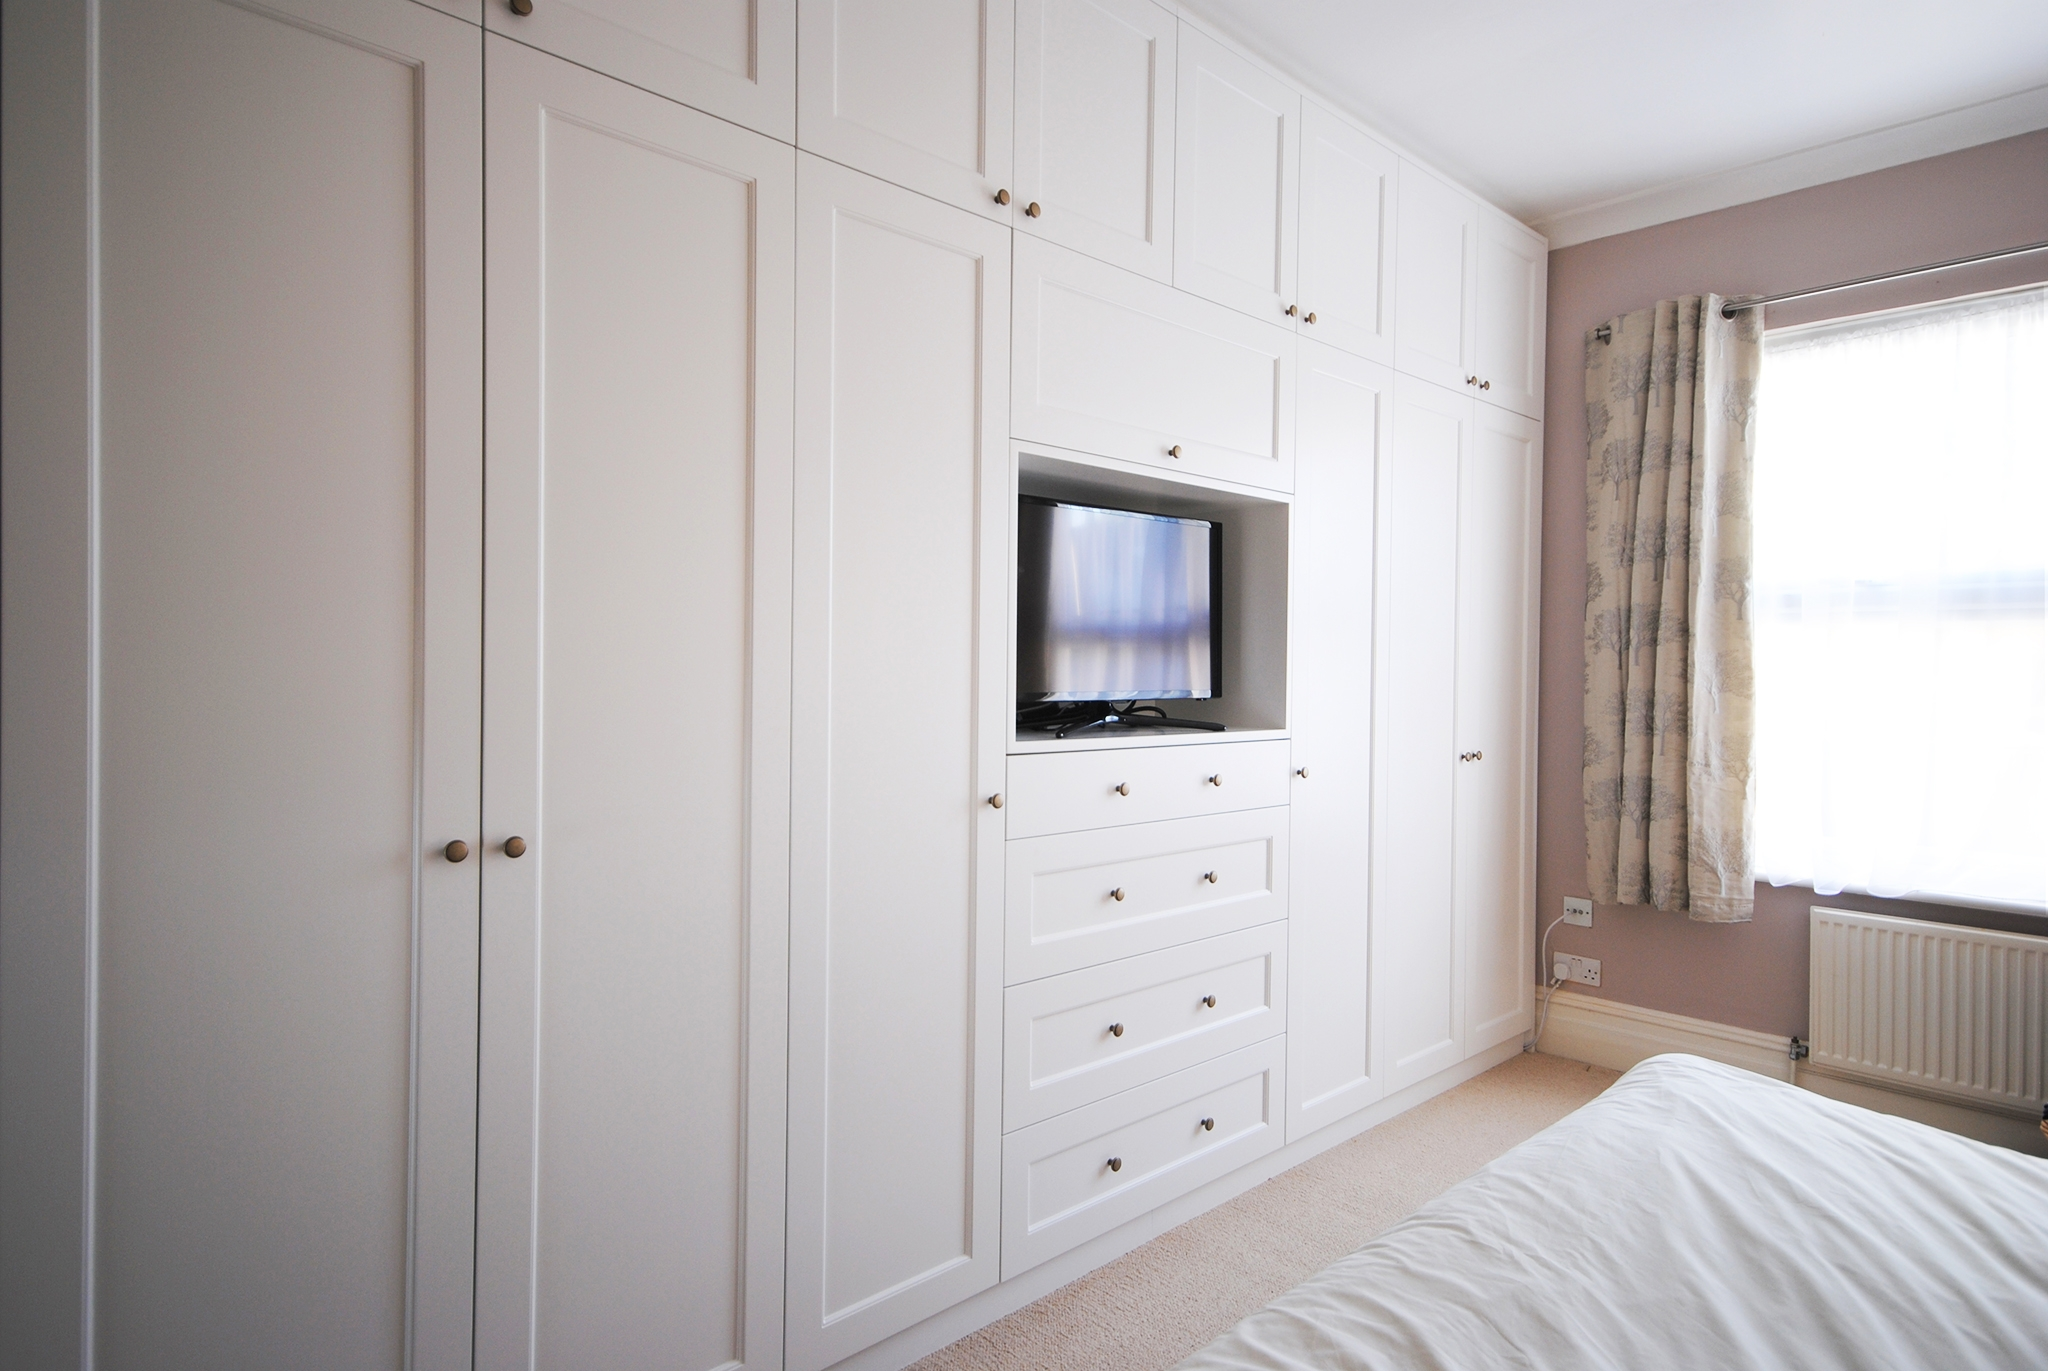 Creative Woodwork Combined A Tv Unit And Wardrobe To Make This In Built In Wardrobes With Tv Space (View 8 of 10)